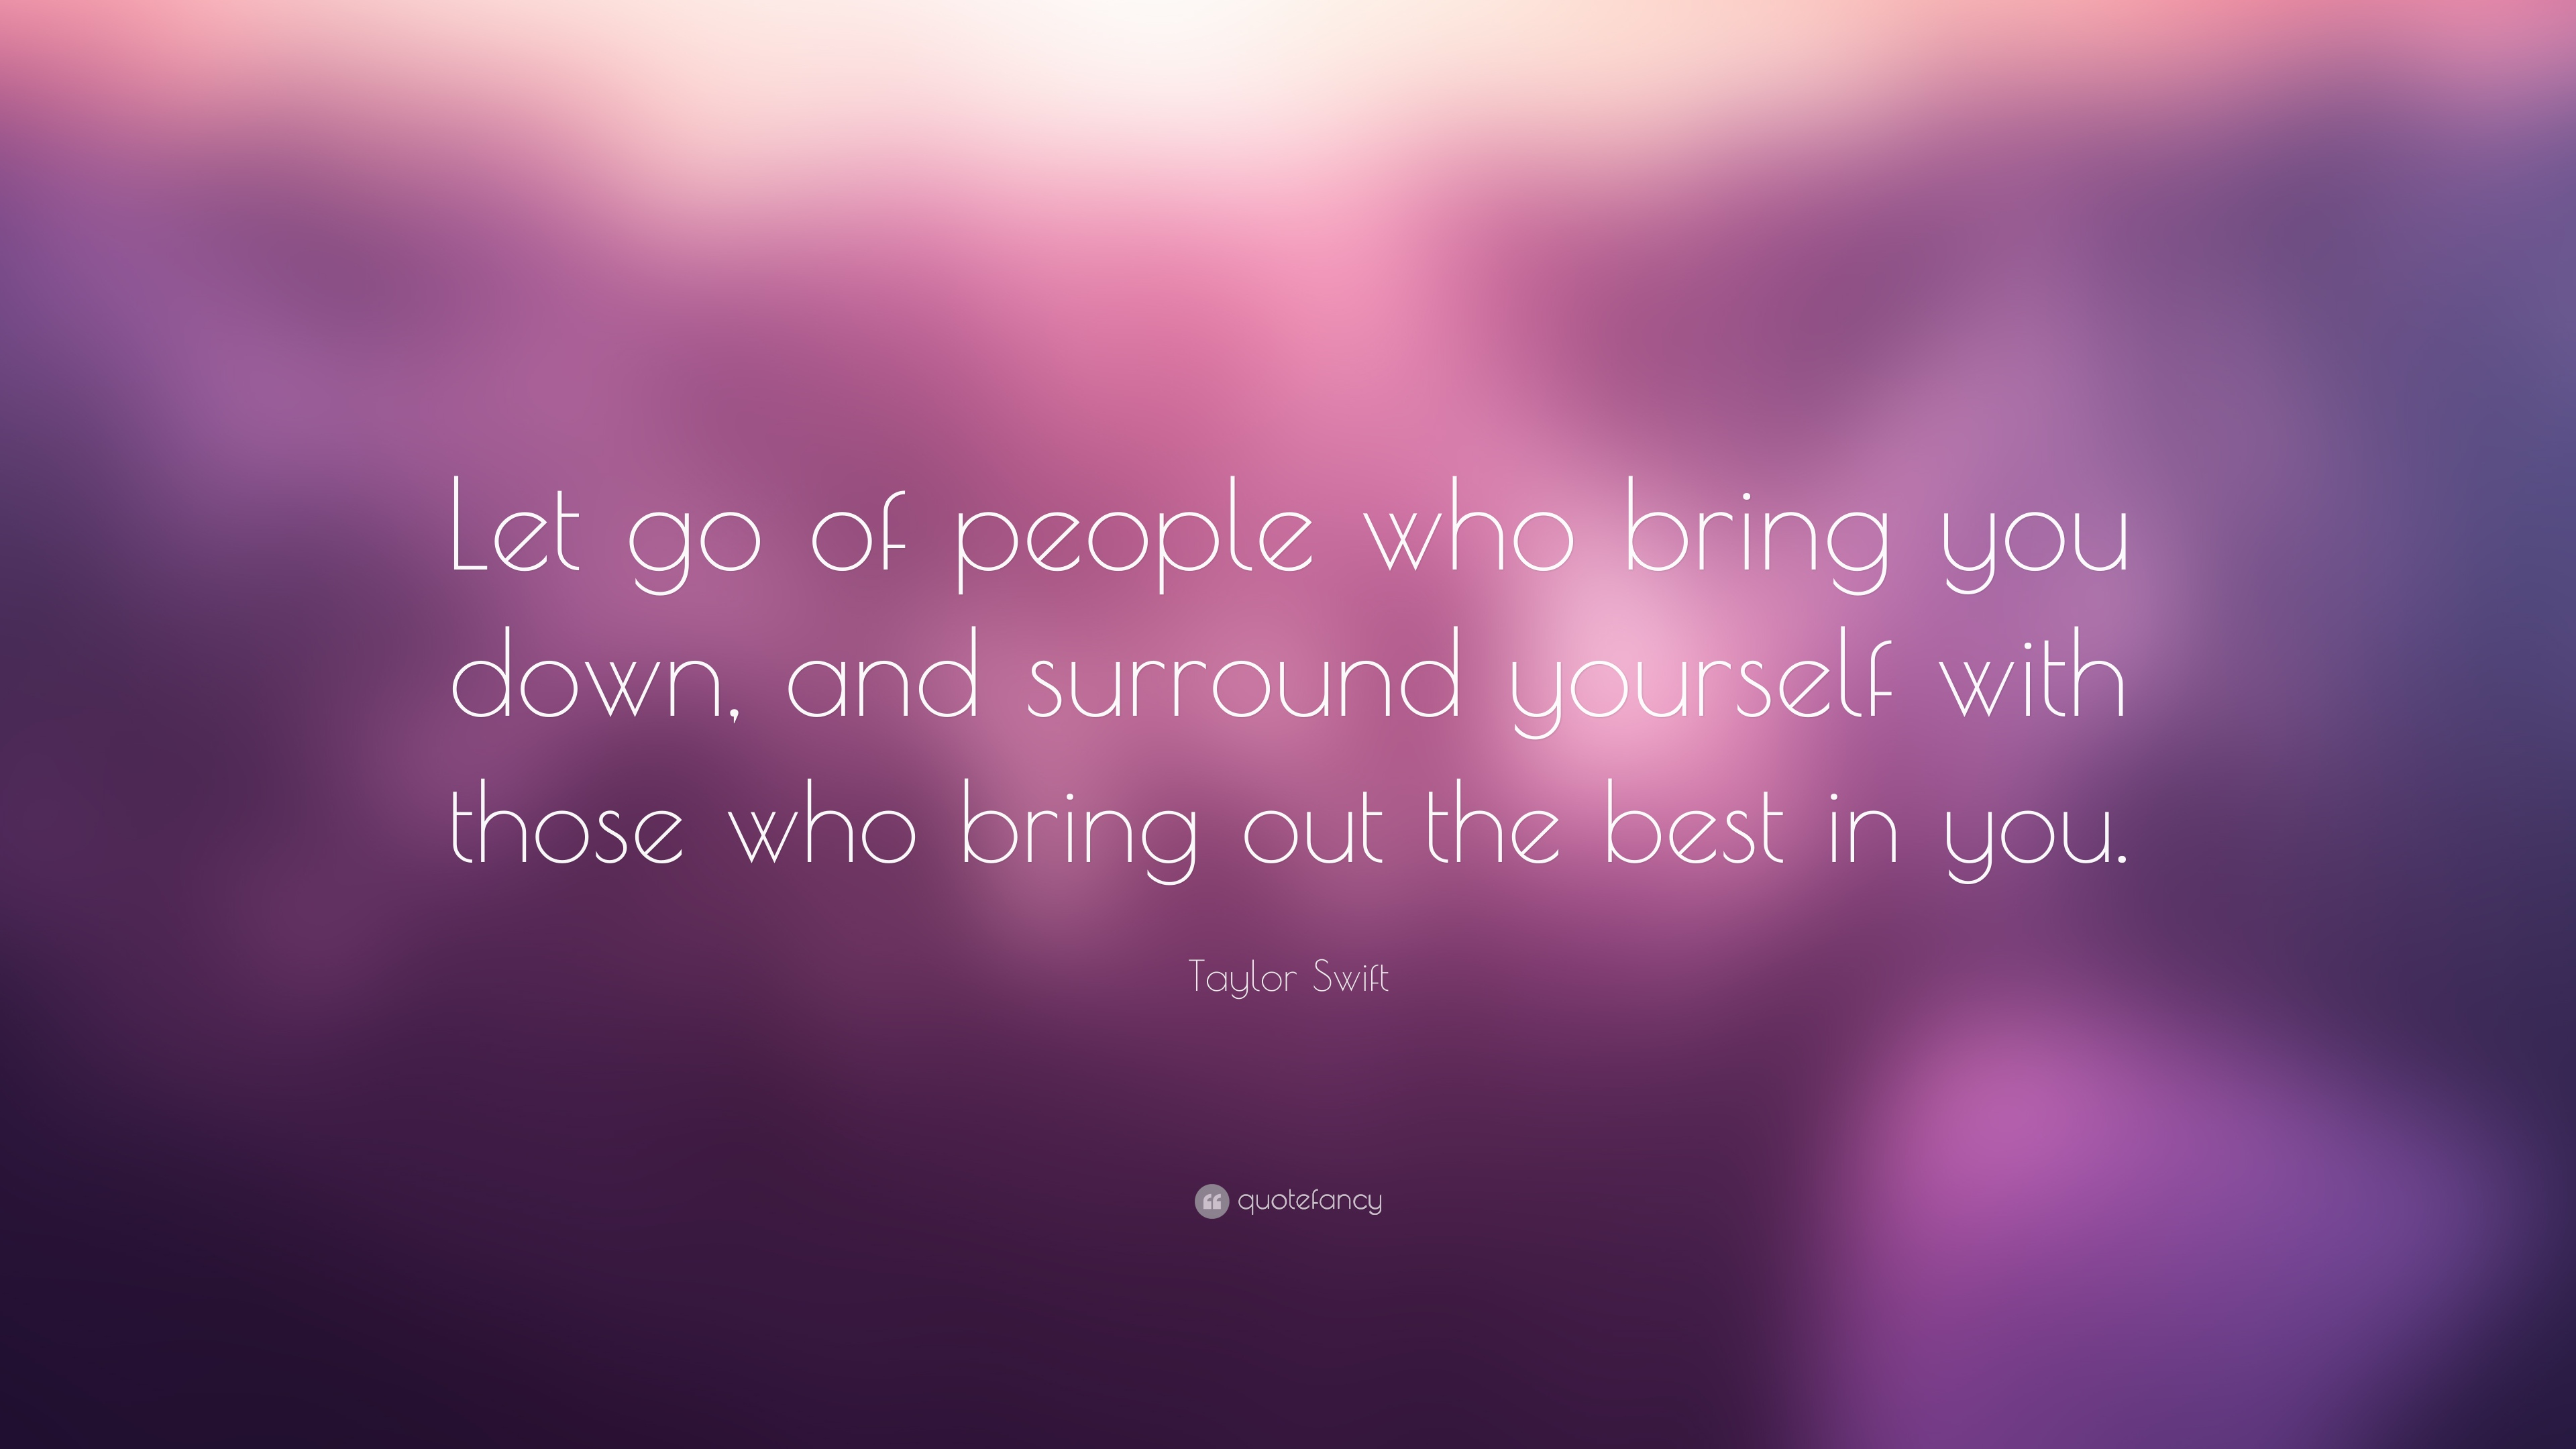 Taylor Swift Quote Let Go Of People Who Bring You Down And Surround Yourself With Those Who Bring Out The Best In You 7 Wallpapers Quotefancy